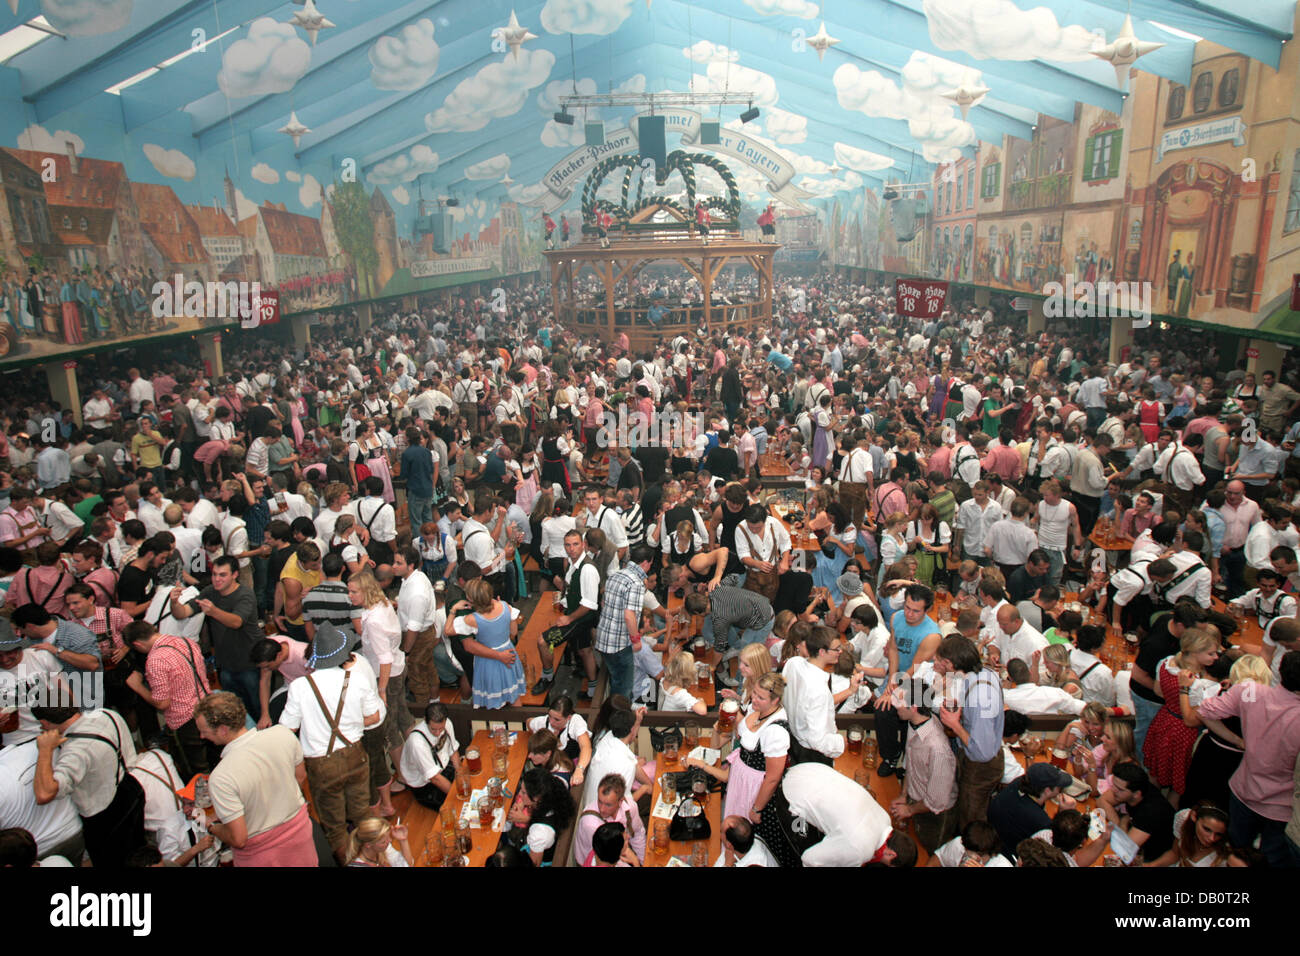 People celebrate at the crowded Hacker-Pschorr beer tent during the Oktoberfest in Munich Germany 22 September 2007. The 174th Oktoberfest the biggest ... & People celebrate at the crowded Hacker-Pschorr beer tent during ...